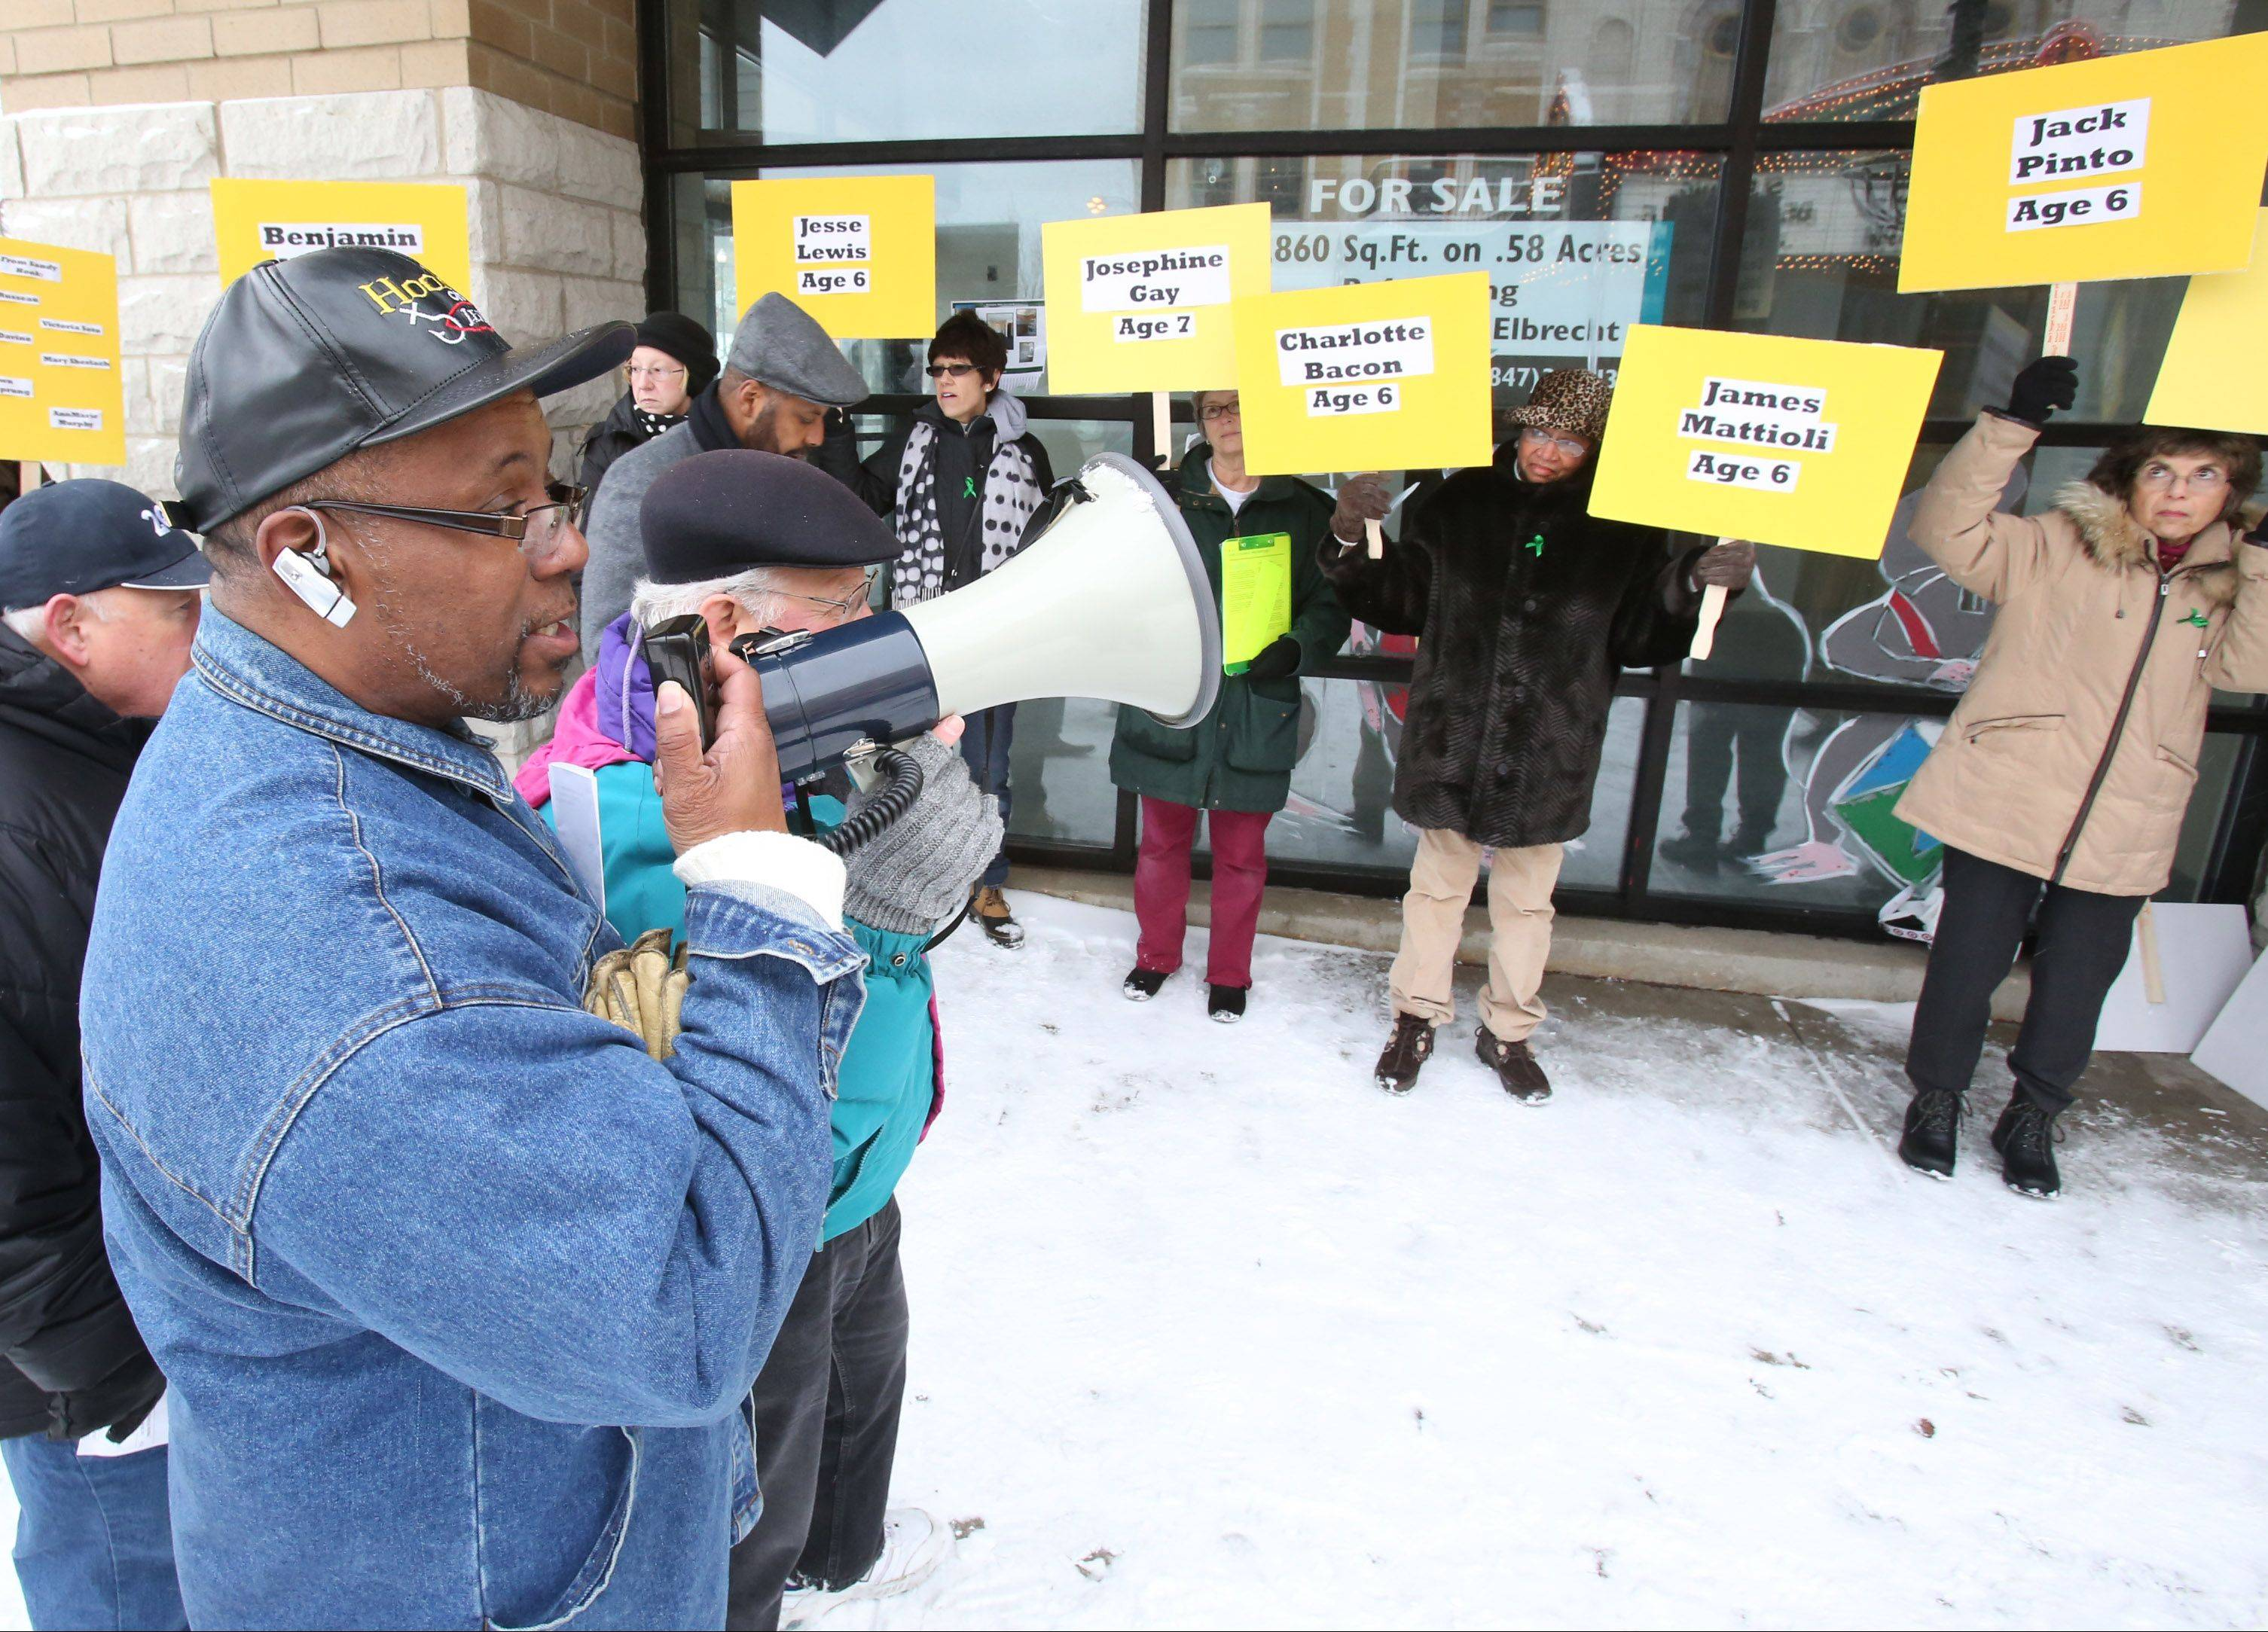 The Rev. Clarence Evans of Mt. Sinai Baptist Church in North Chicago asks people to remember the victims of a shooting that occurred on Dec. 14 last year at a Newtown, Conn., school. The Lake McHenry Chapter of Organizing for Action hosted a remembrance event Saturday in Waukegan.